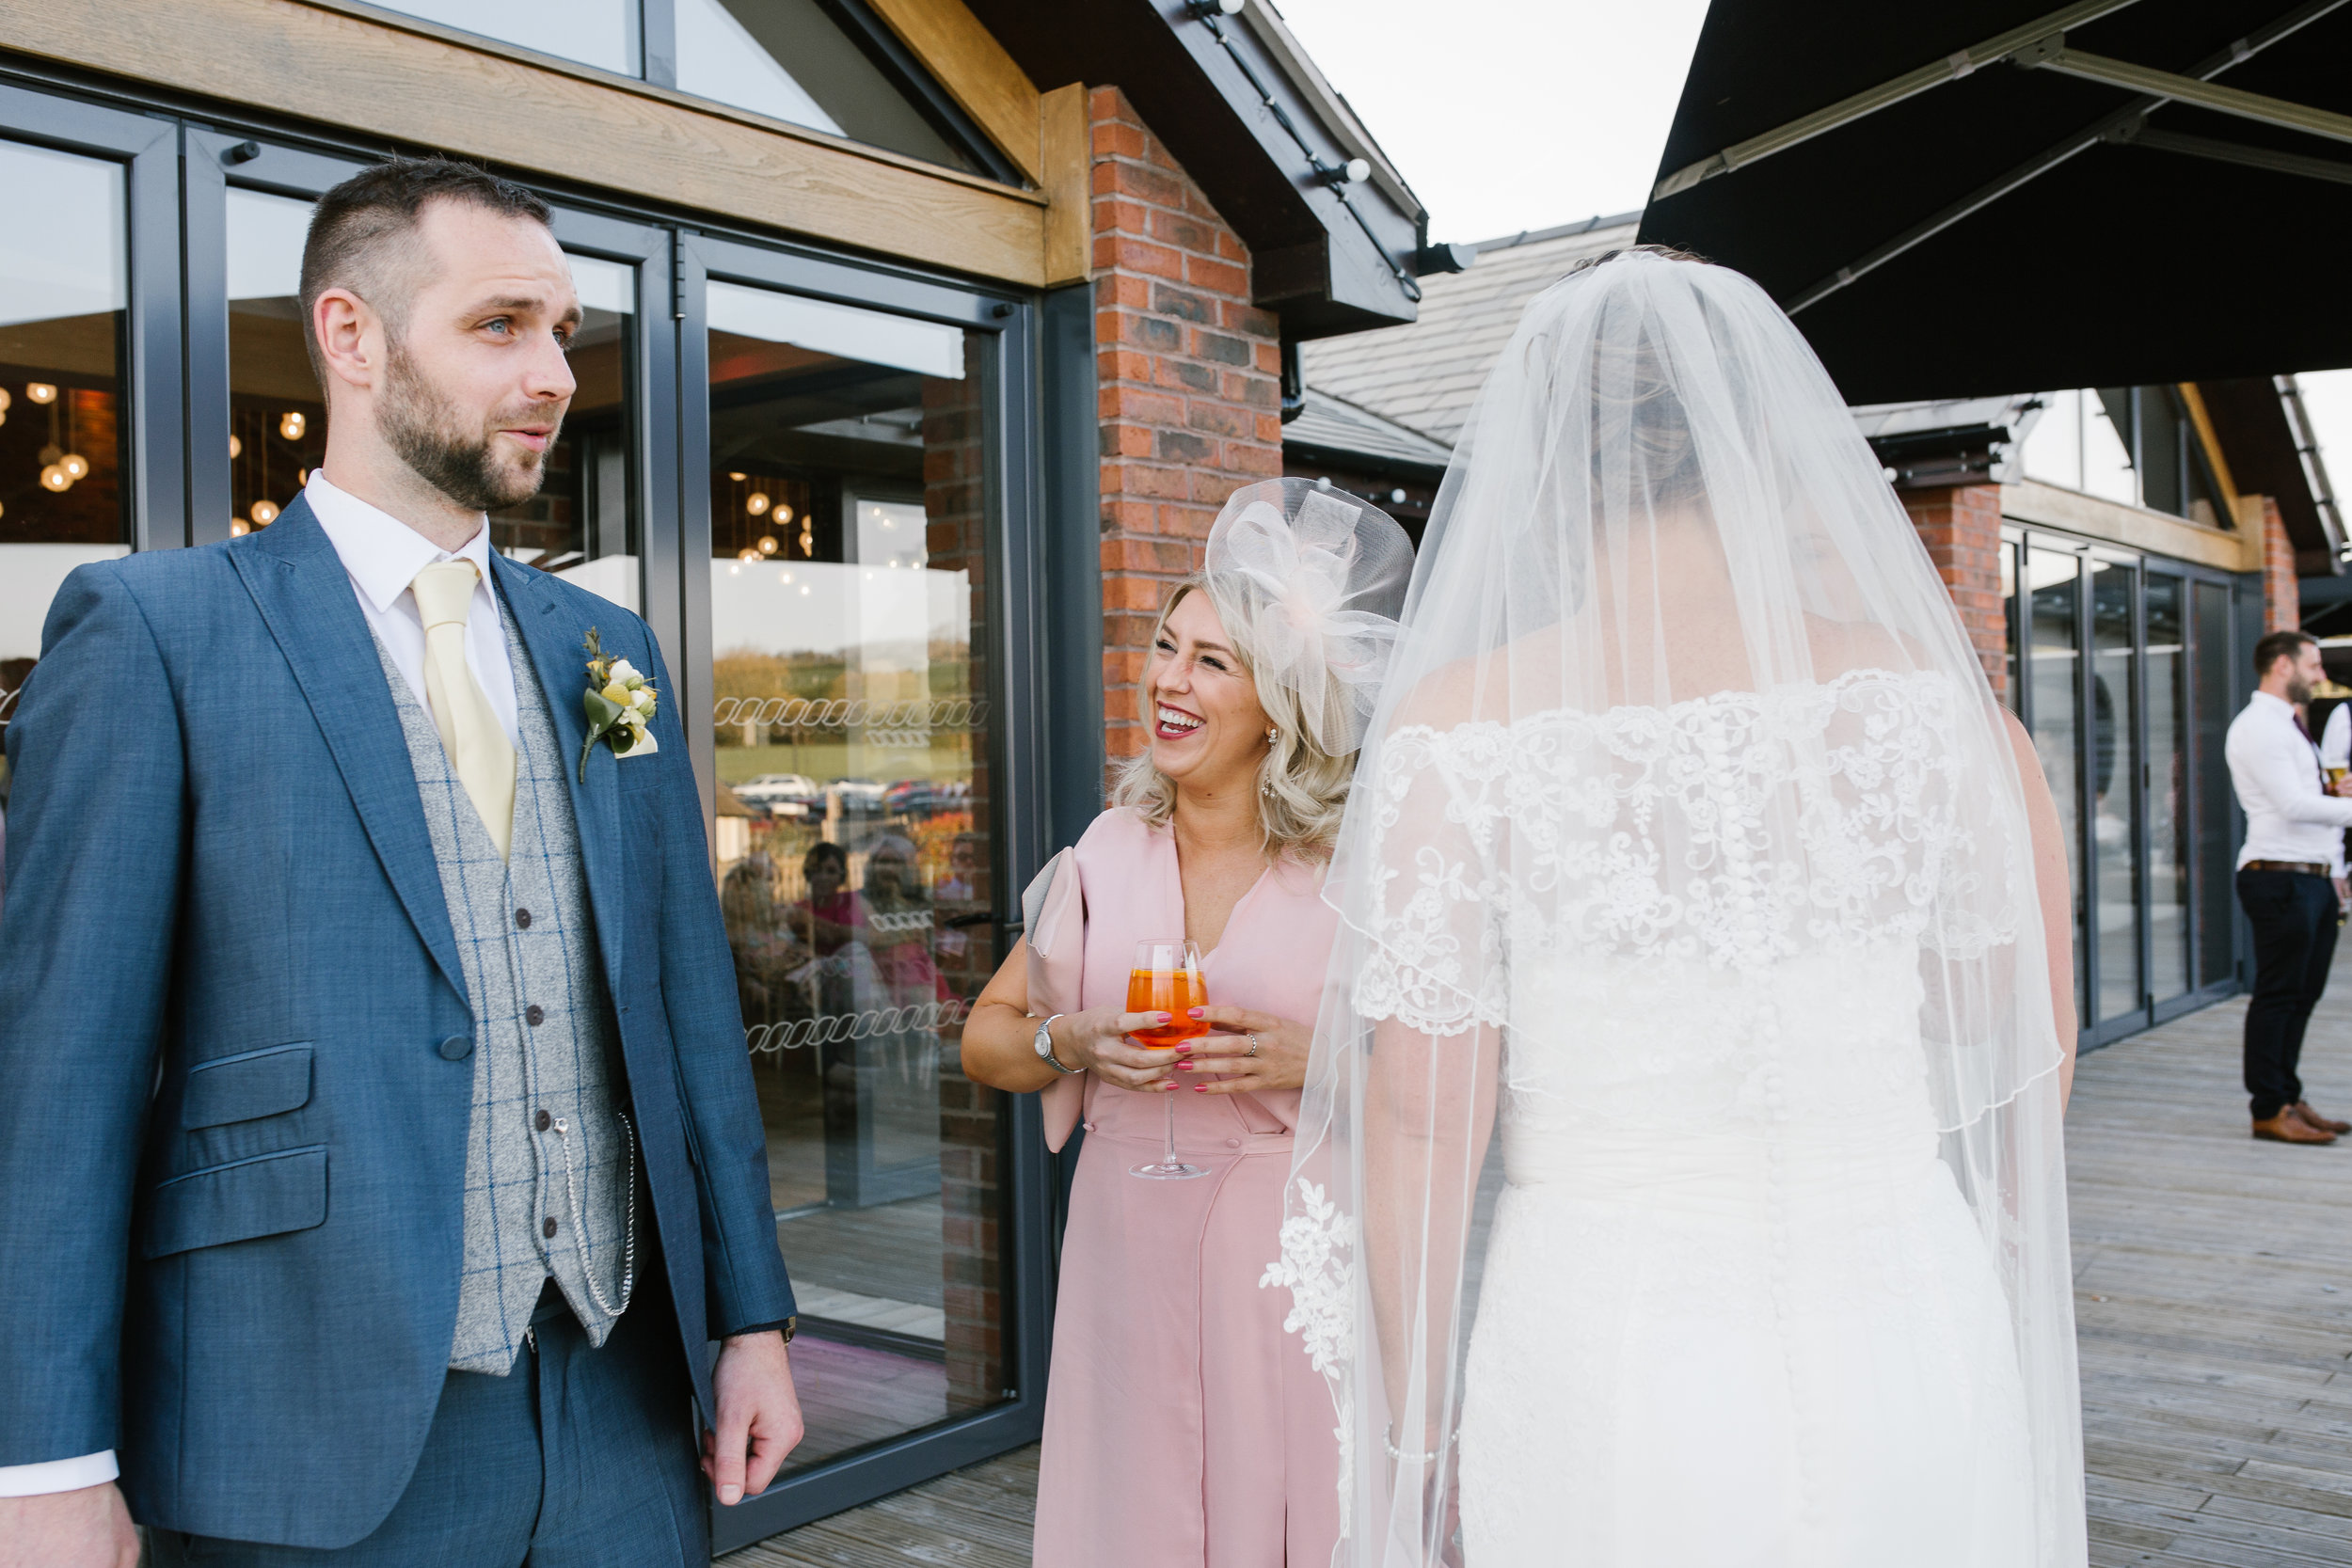 groom greeted wedding guests as they drink on the evening of their wedding at the boat house